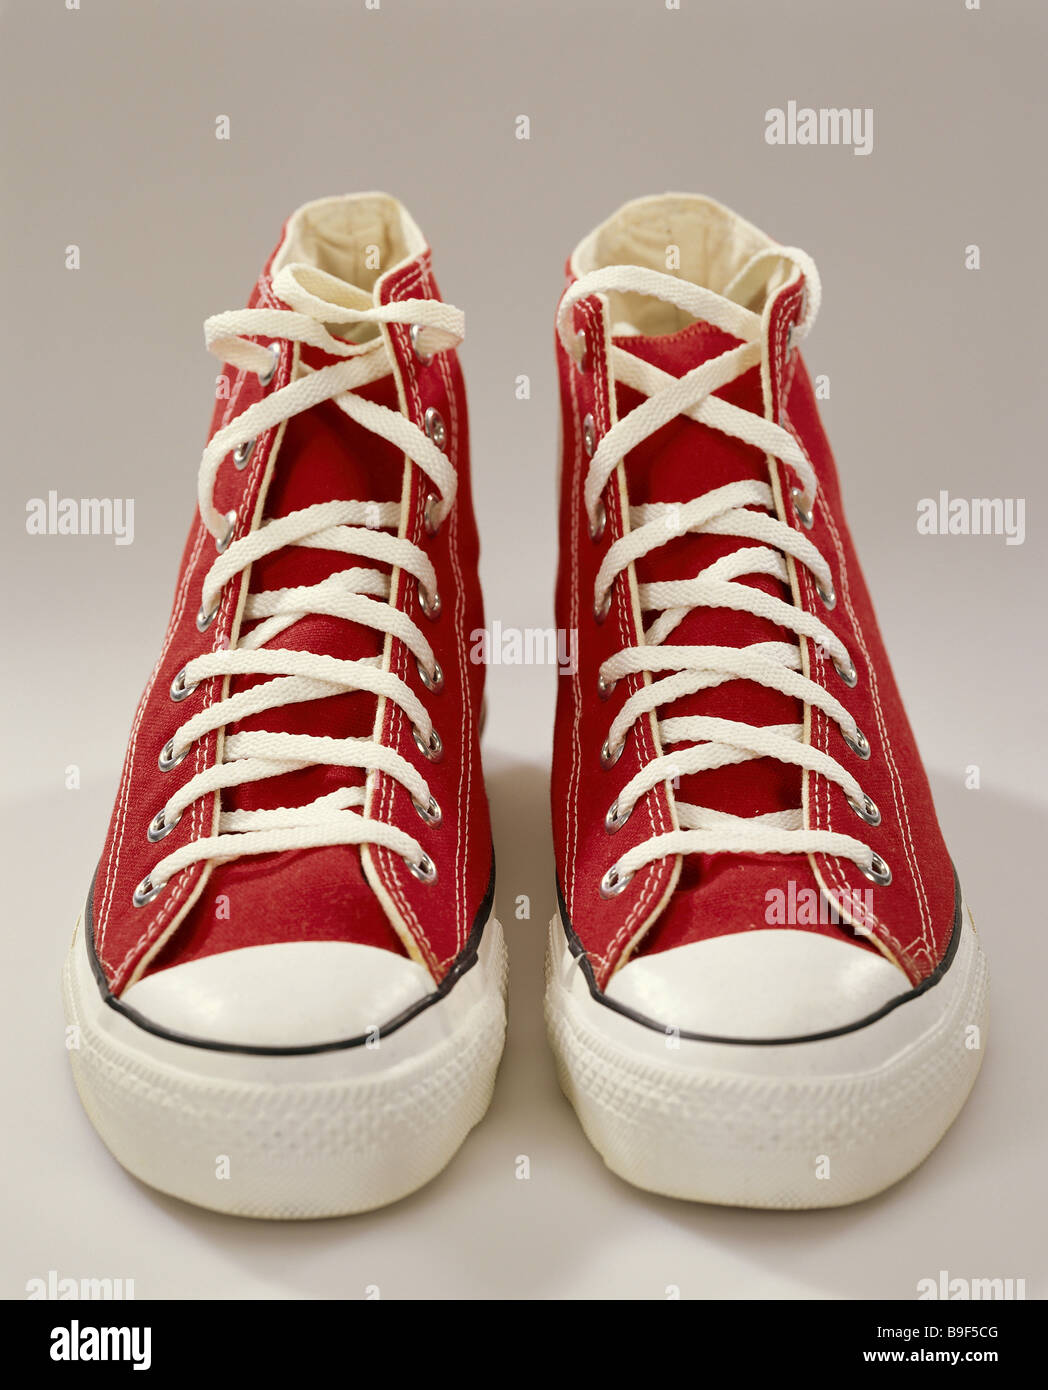 59b1351665c Sneakers red footwear shoes athletically sneakers gym shoes linen-shoes  trendy studio Converse allstar sneakers